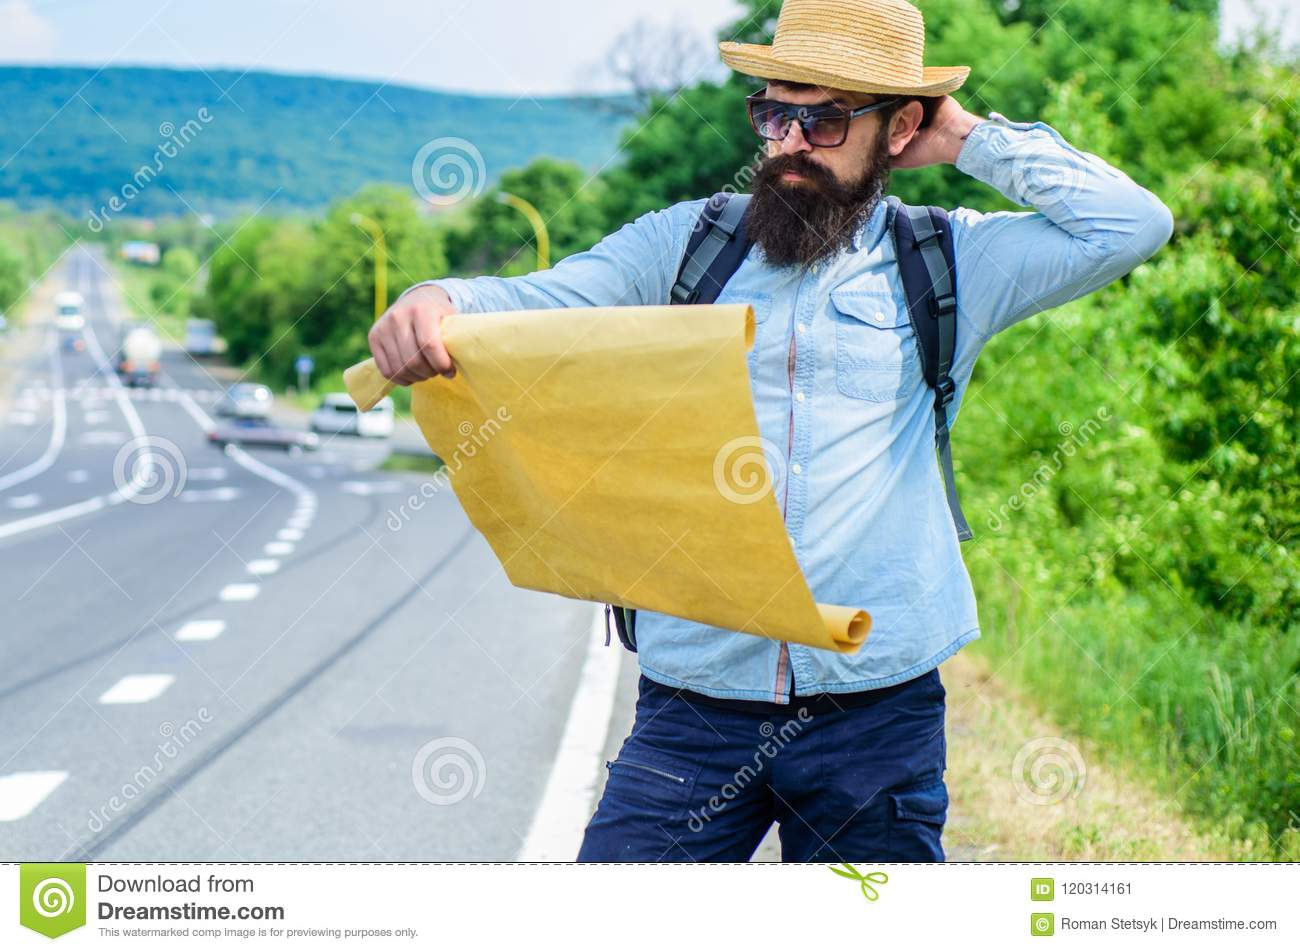 Find direction map large sheet of paper. Where should I go. Tourist backpacker map lost direction travelling. Around the